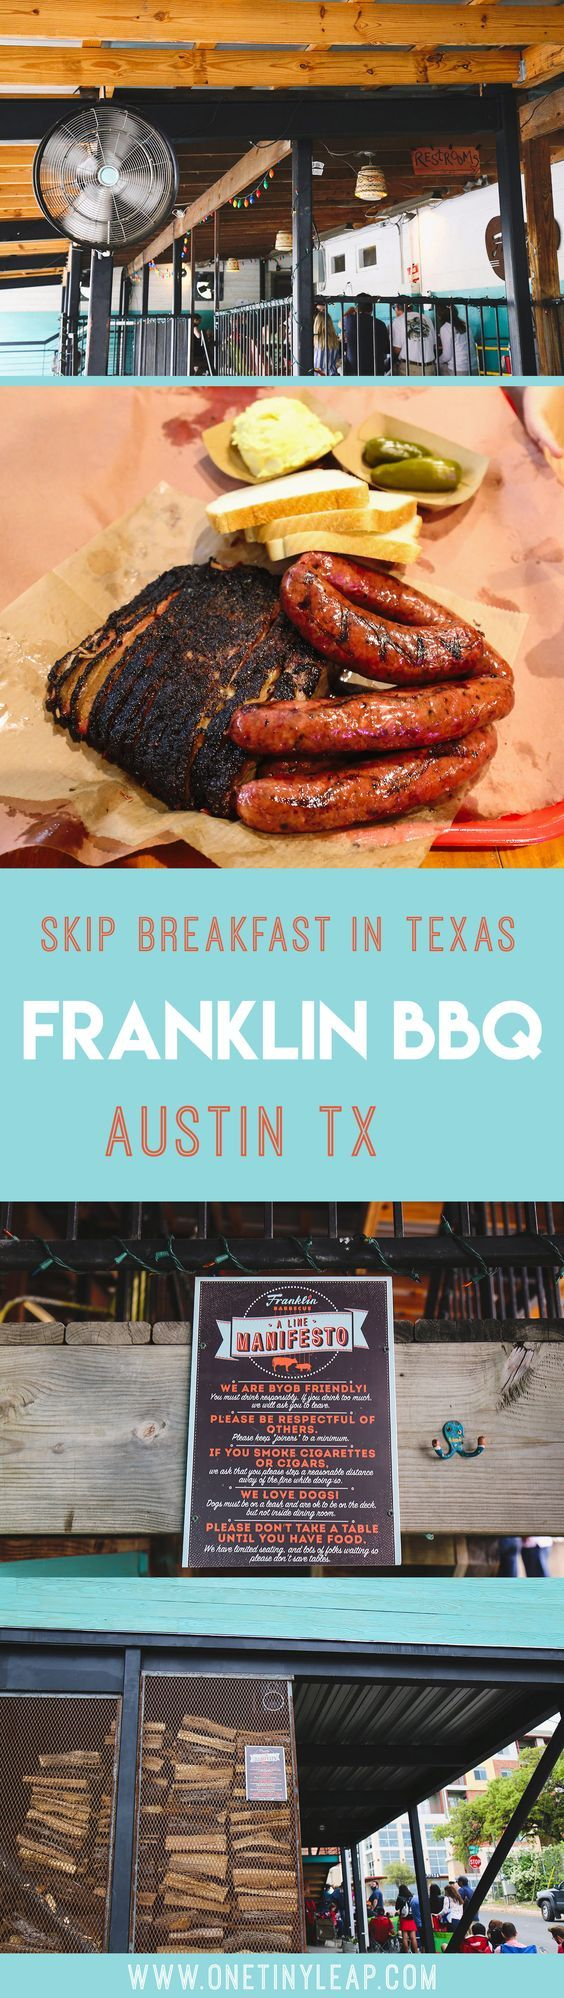 Get a virtual taste of the best BBQ in the world! Franklin BBQ in Austin